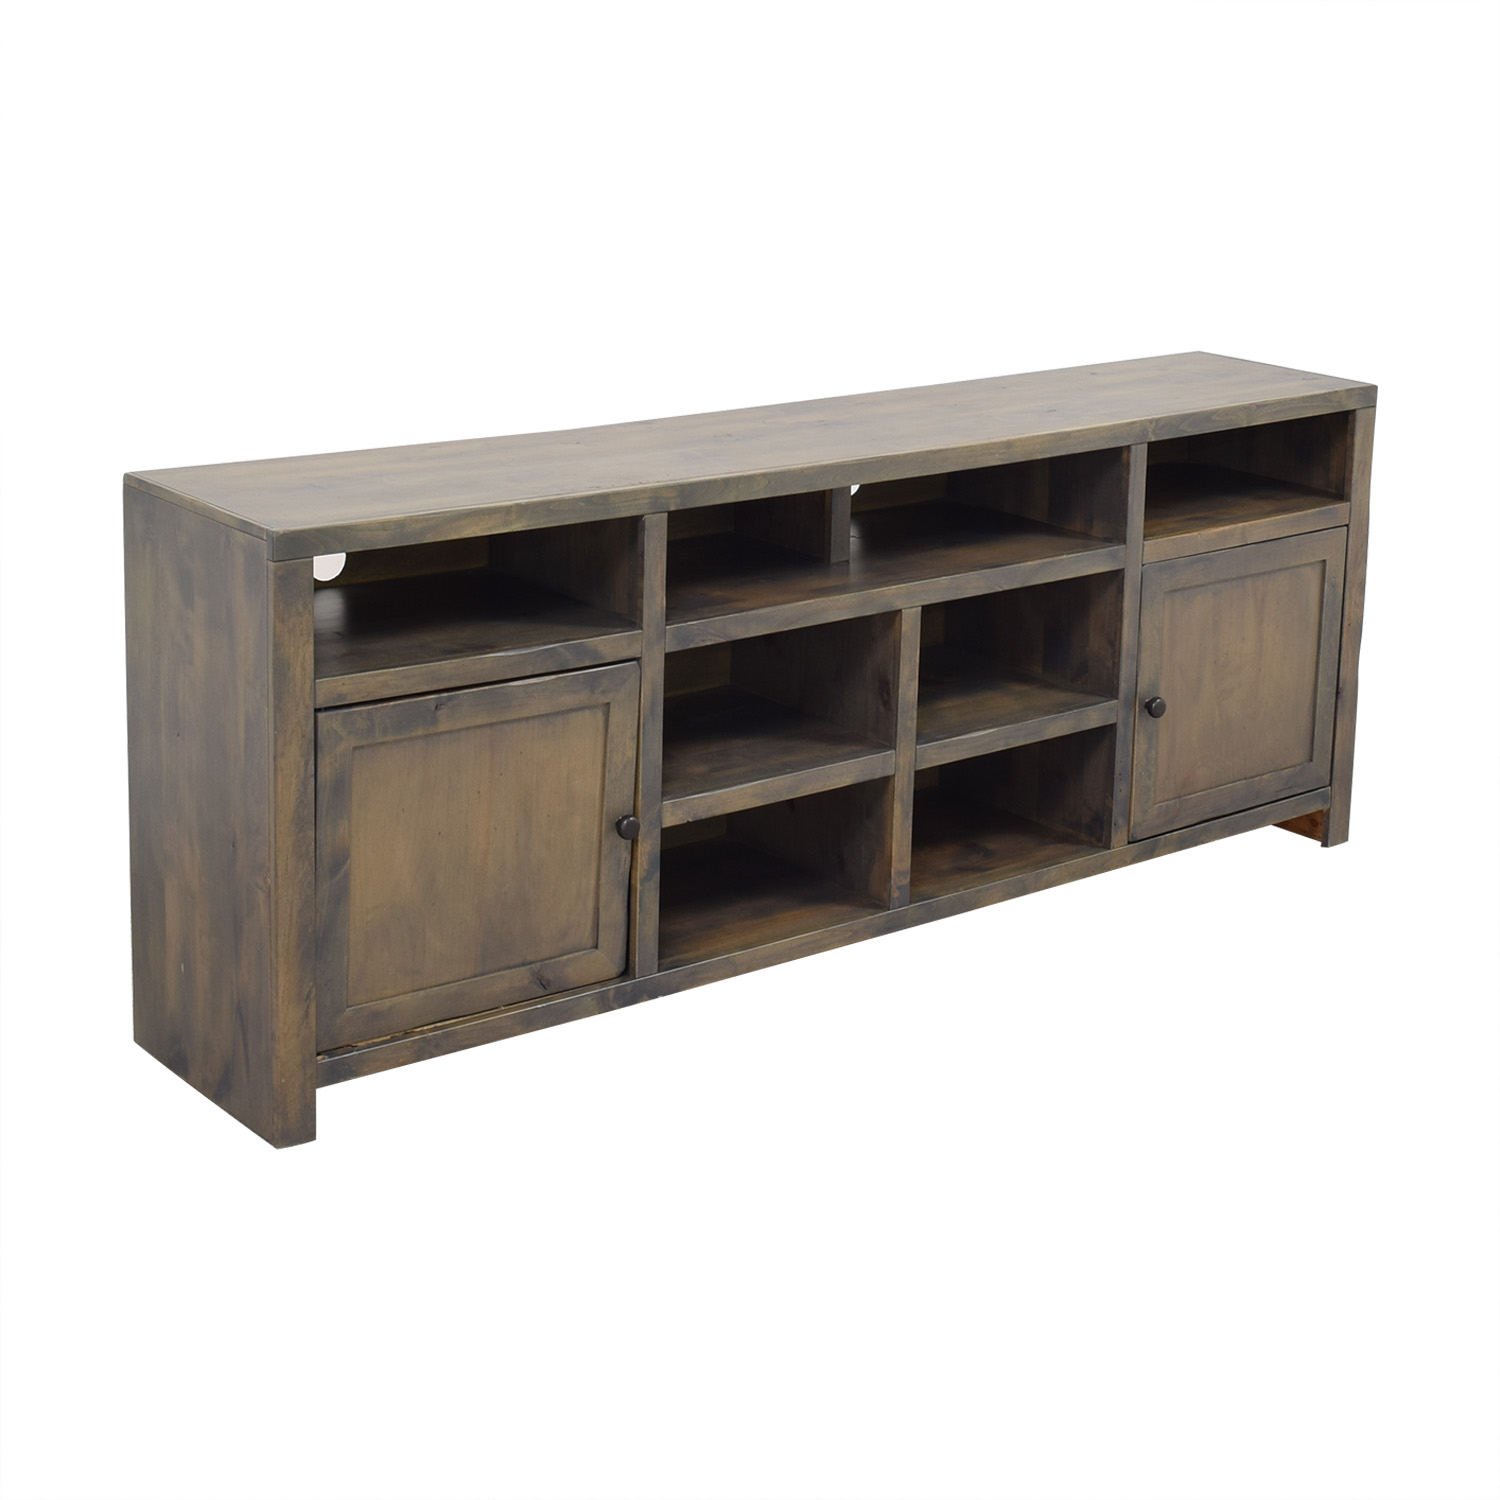 Legends Furniture Legends Furniture Joshua Creek Super Console nyc